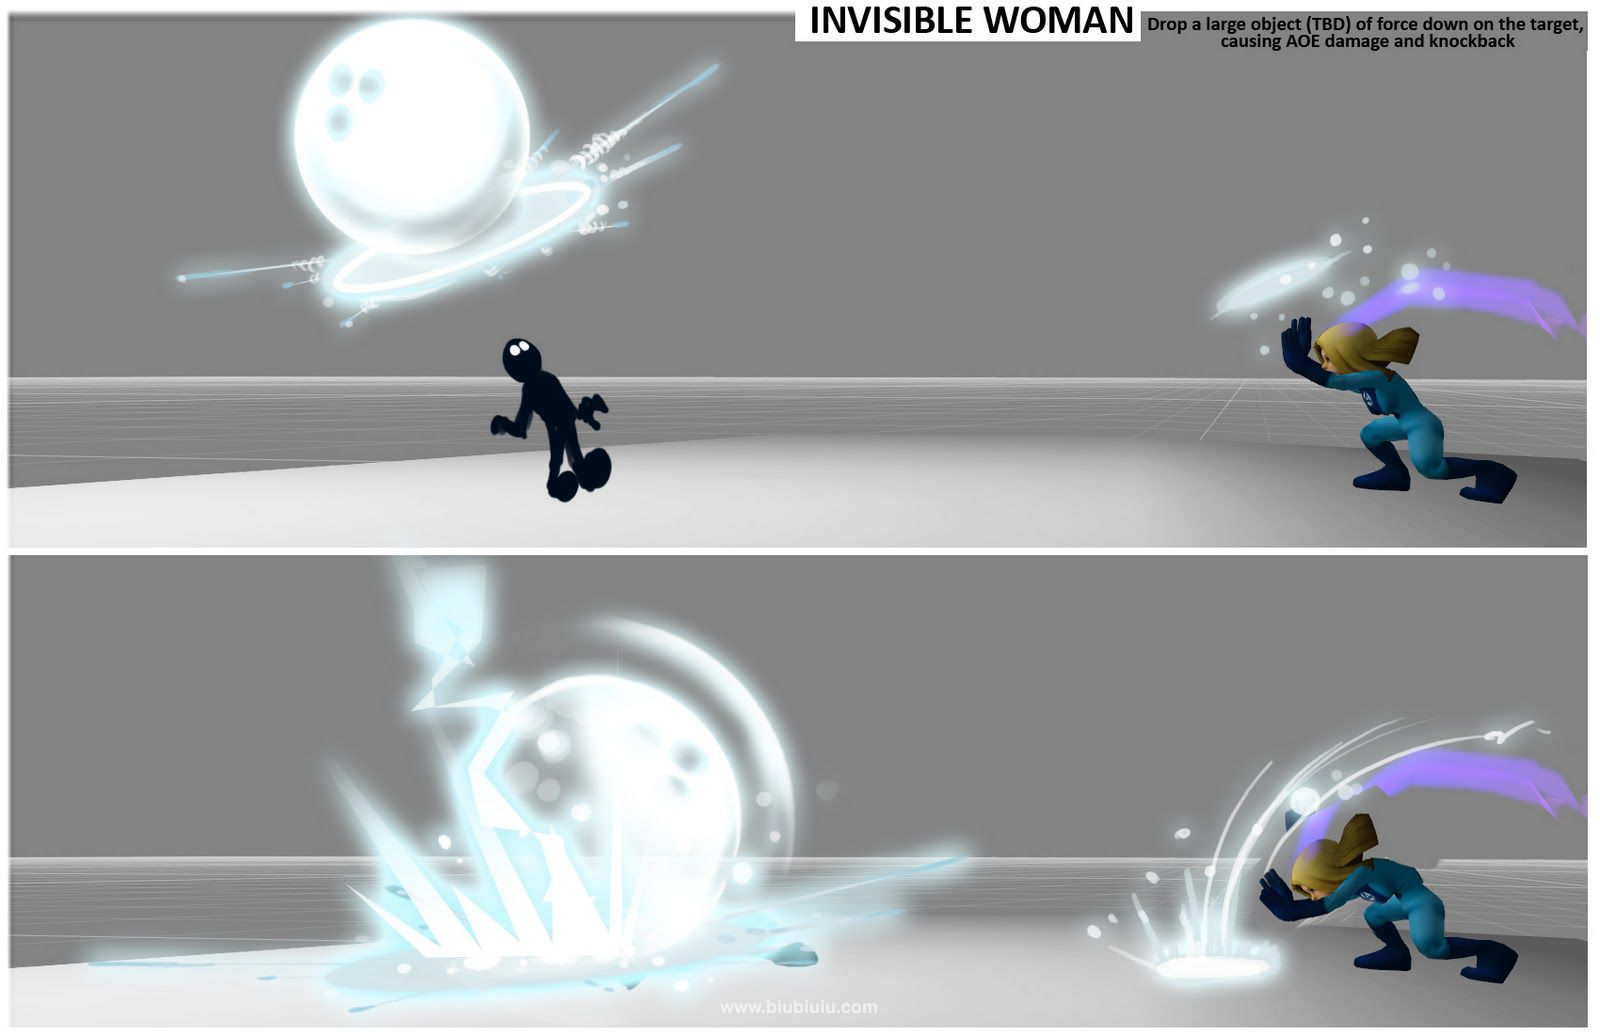 Invisible Woman_fx_bowlingball.jpg